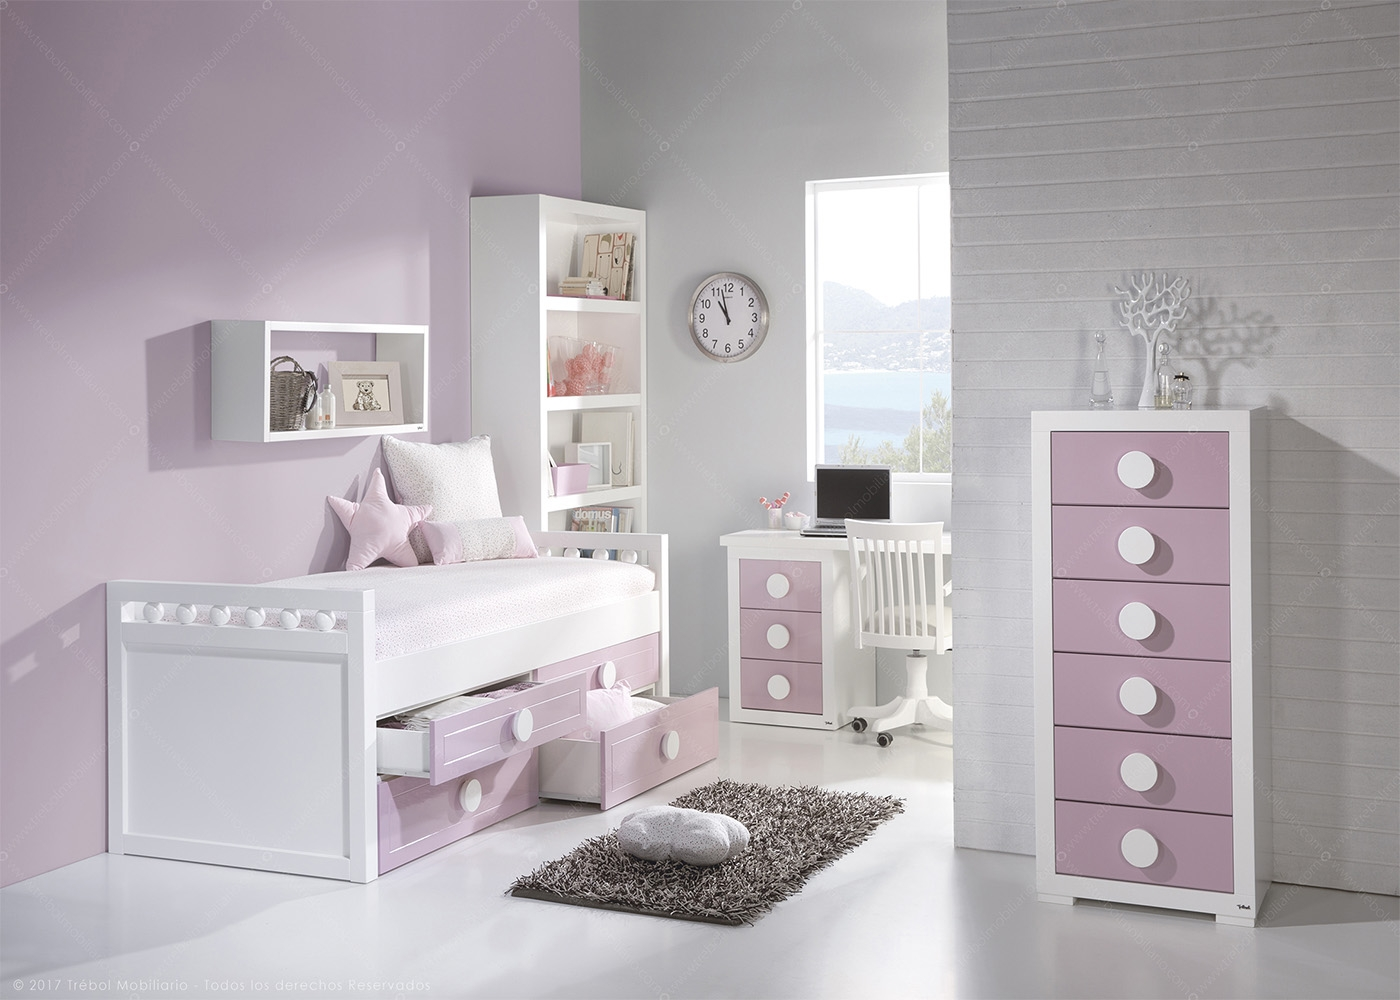 chambre fille ou gar on de qualit et personnalisable chez ksl living. Black Bedroom Furniture Sets. Home Design Ideas